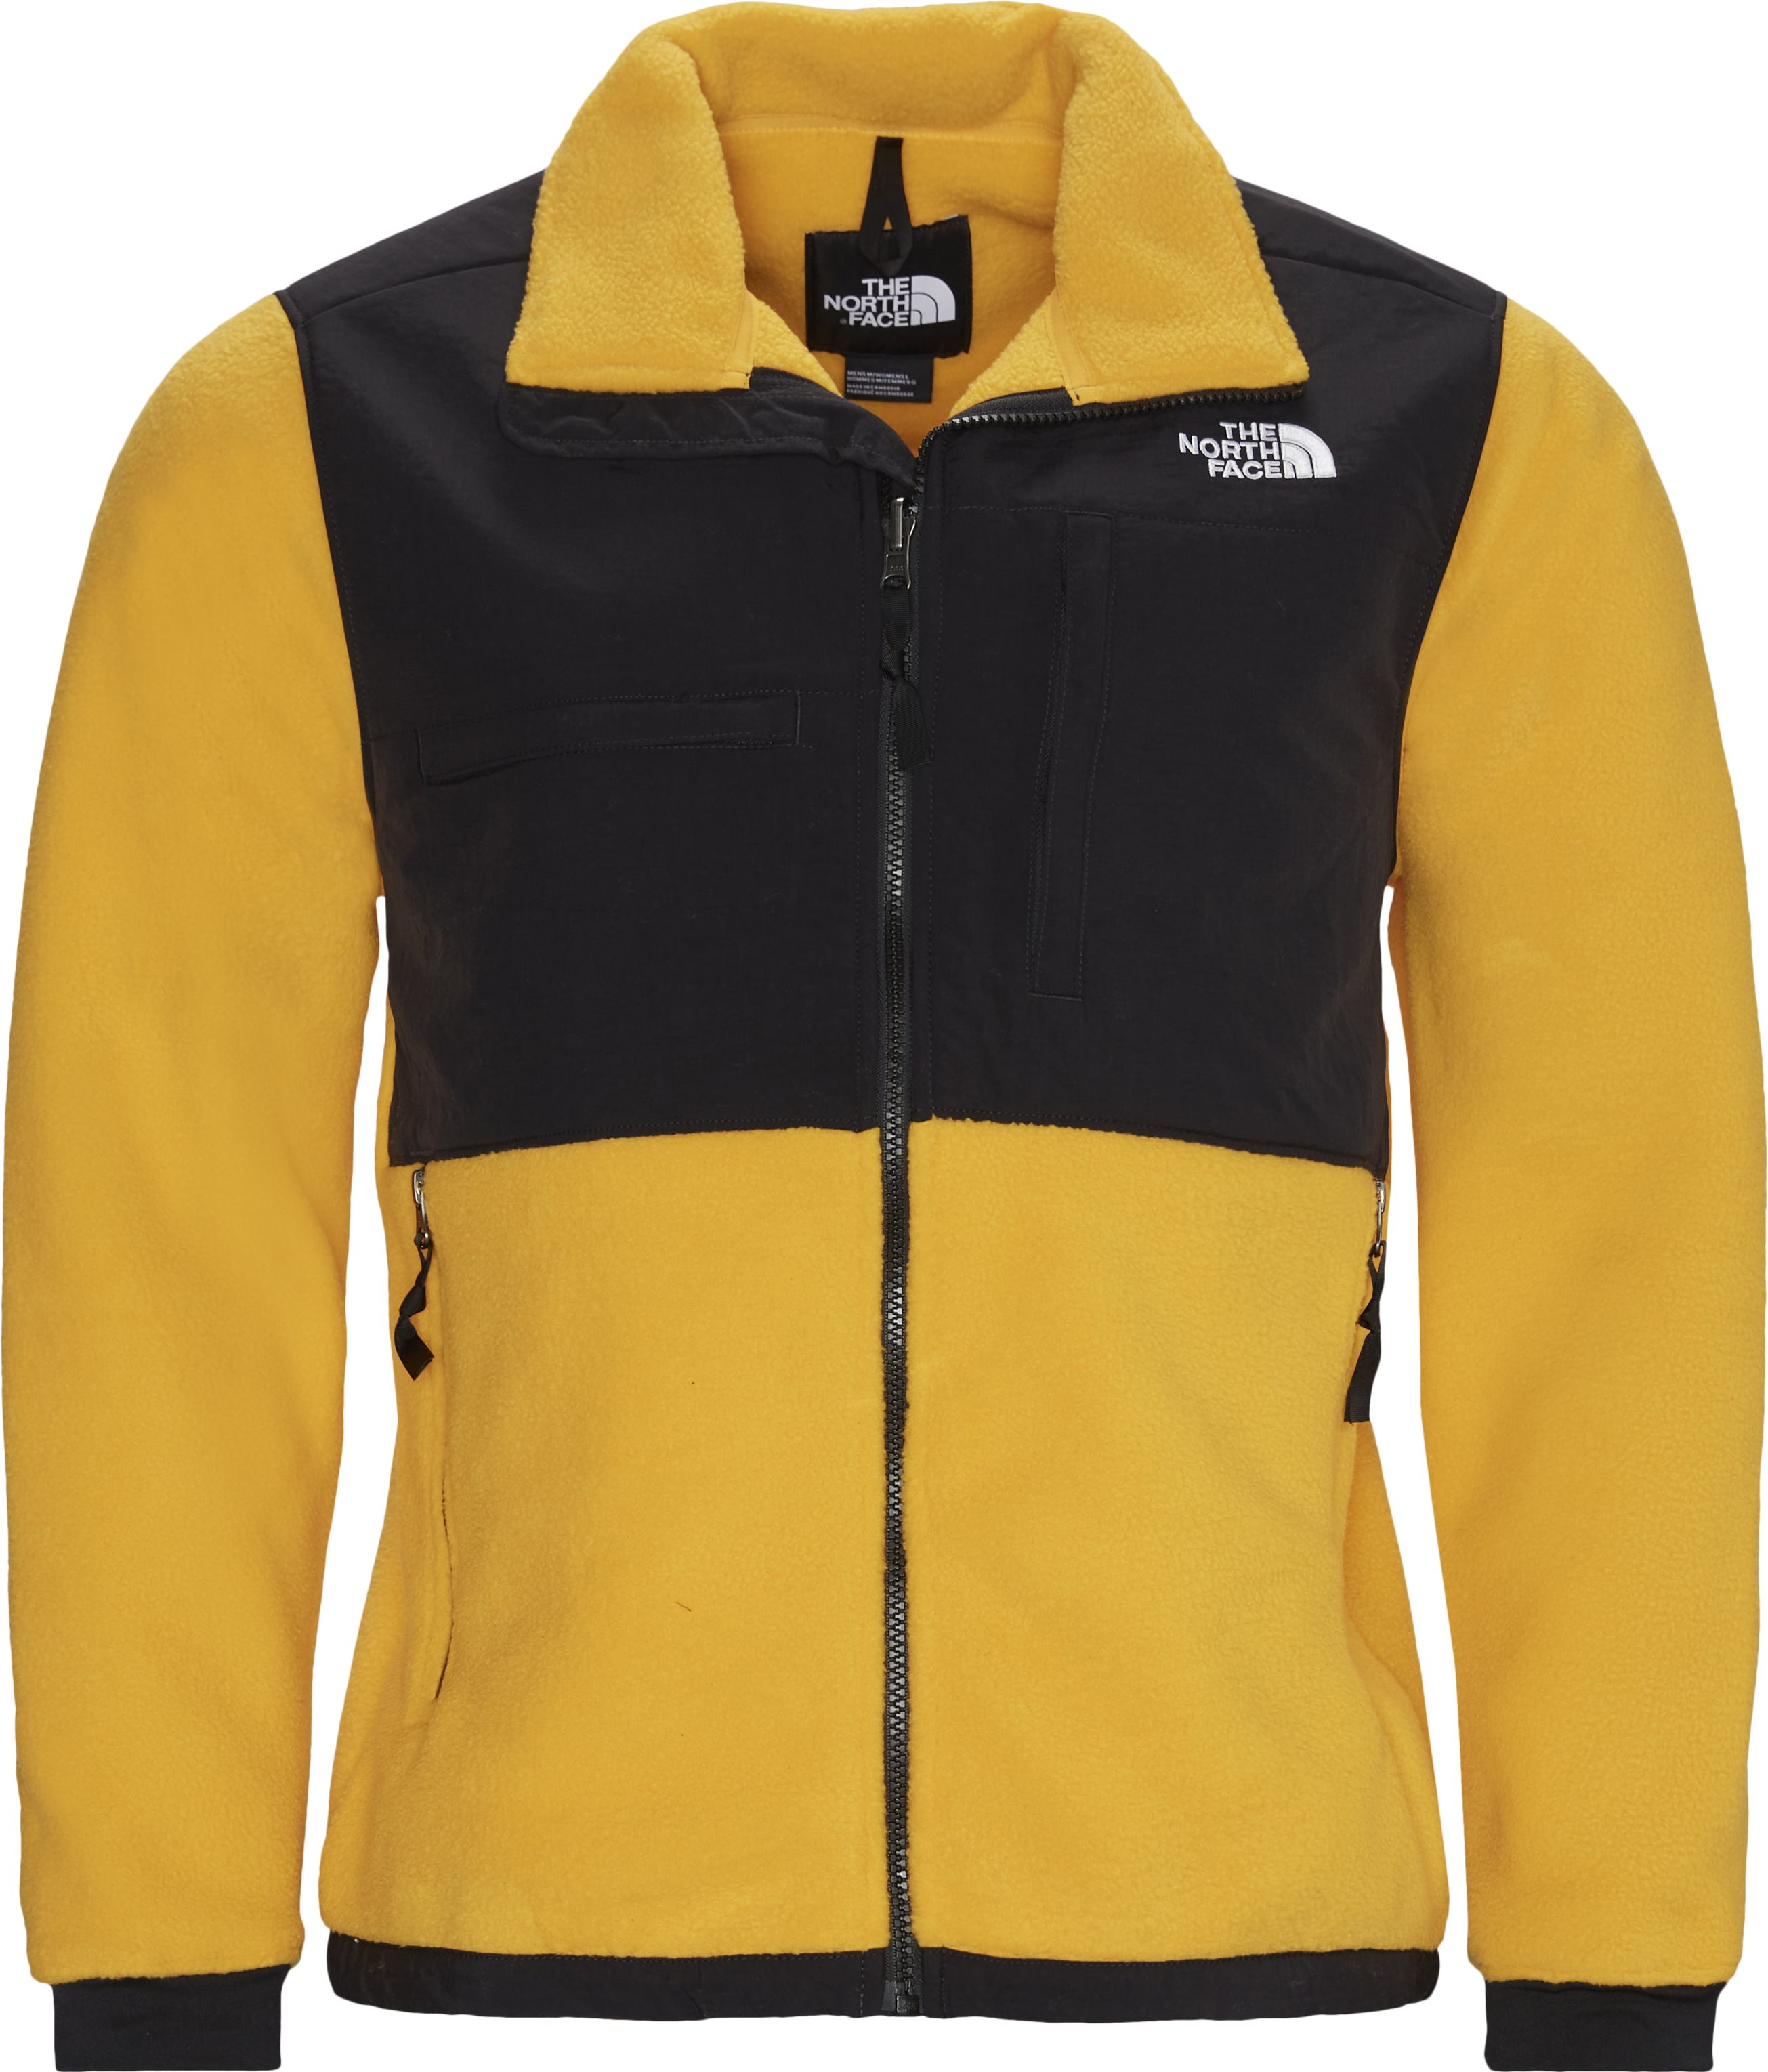 Denali 2 Jacket - Jackor - Regular - Gul